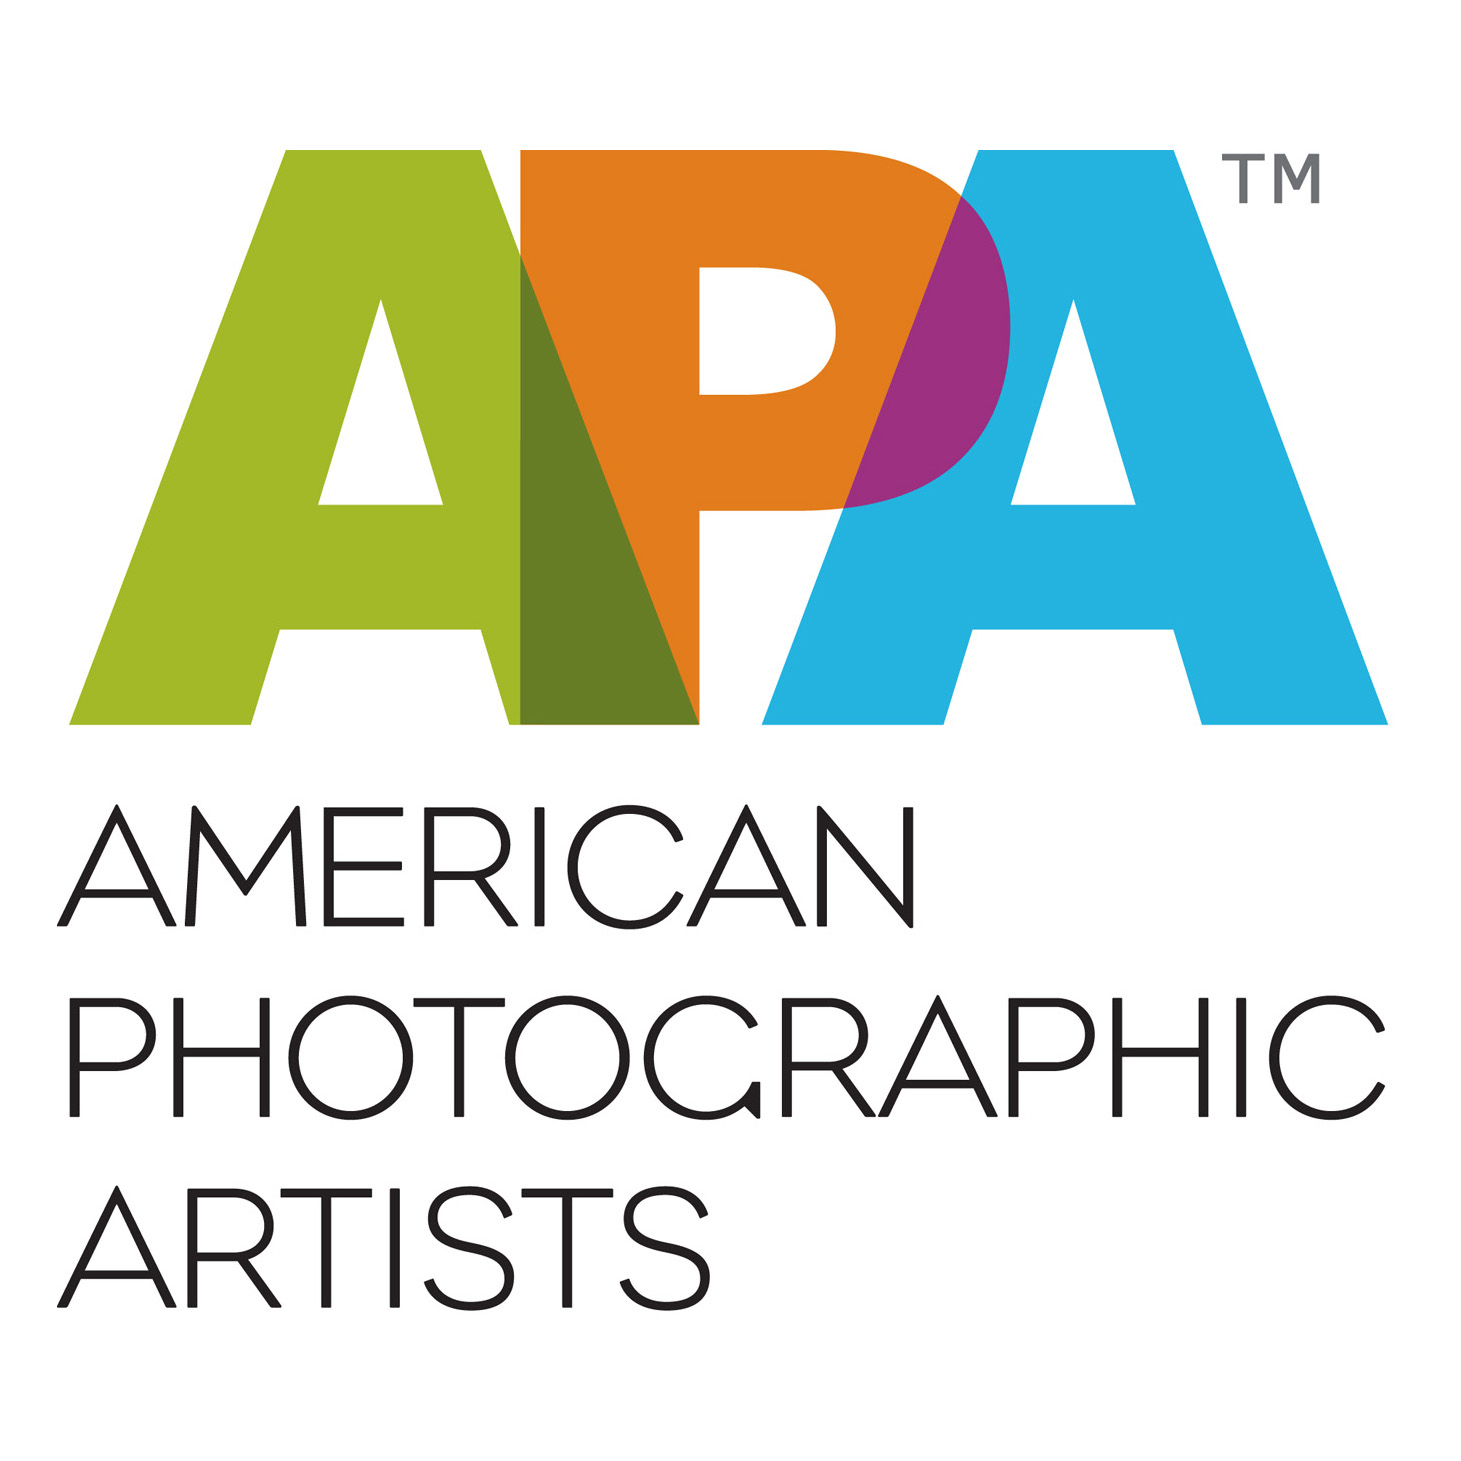 APA - American Photographic Artists